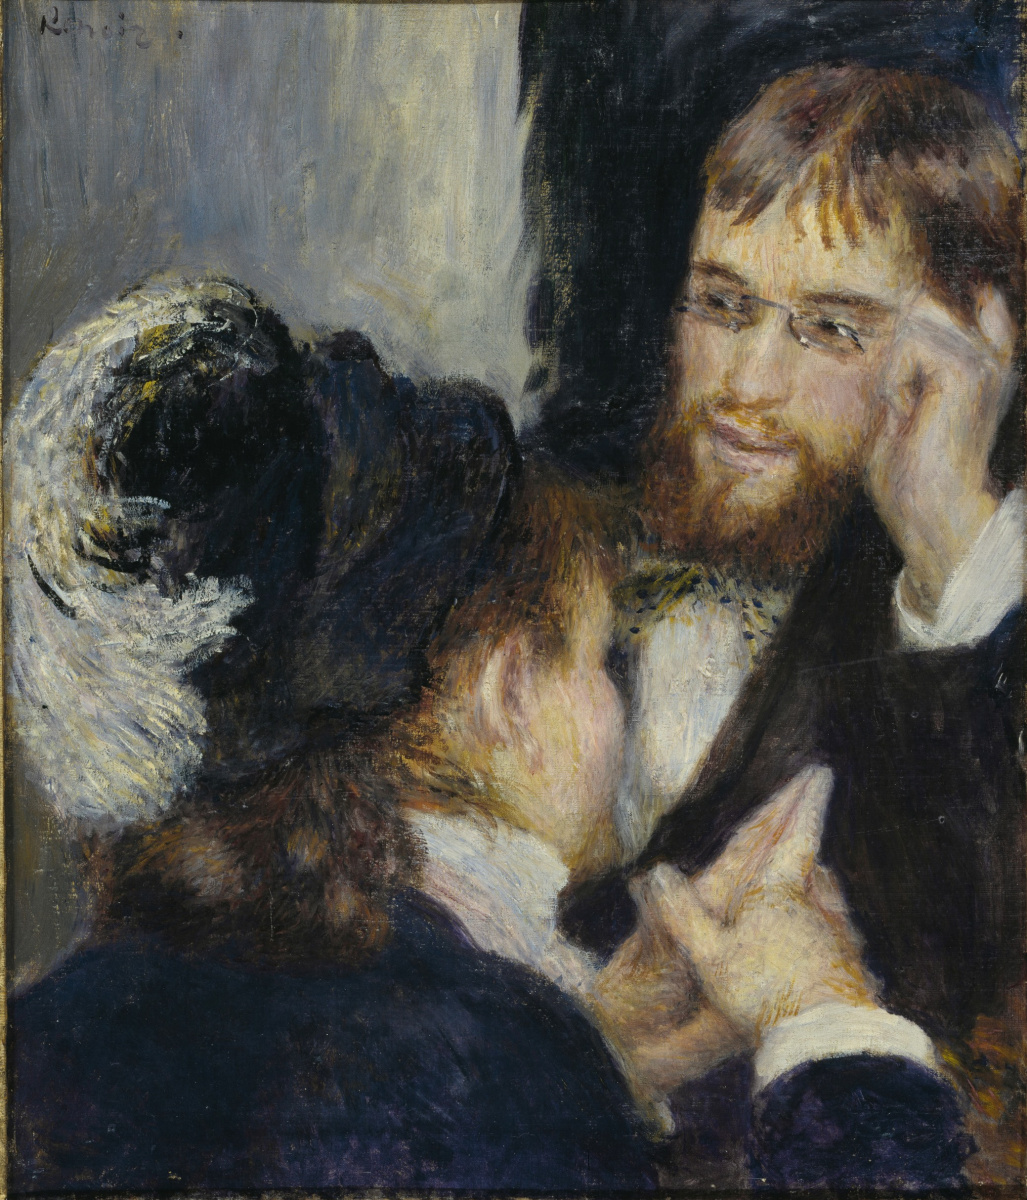 Pierre-Auguste Renoir. The conversation